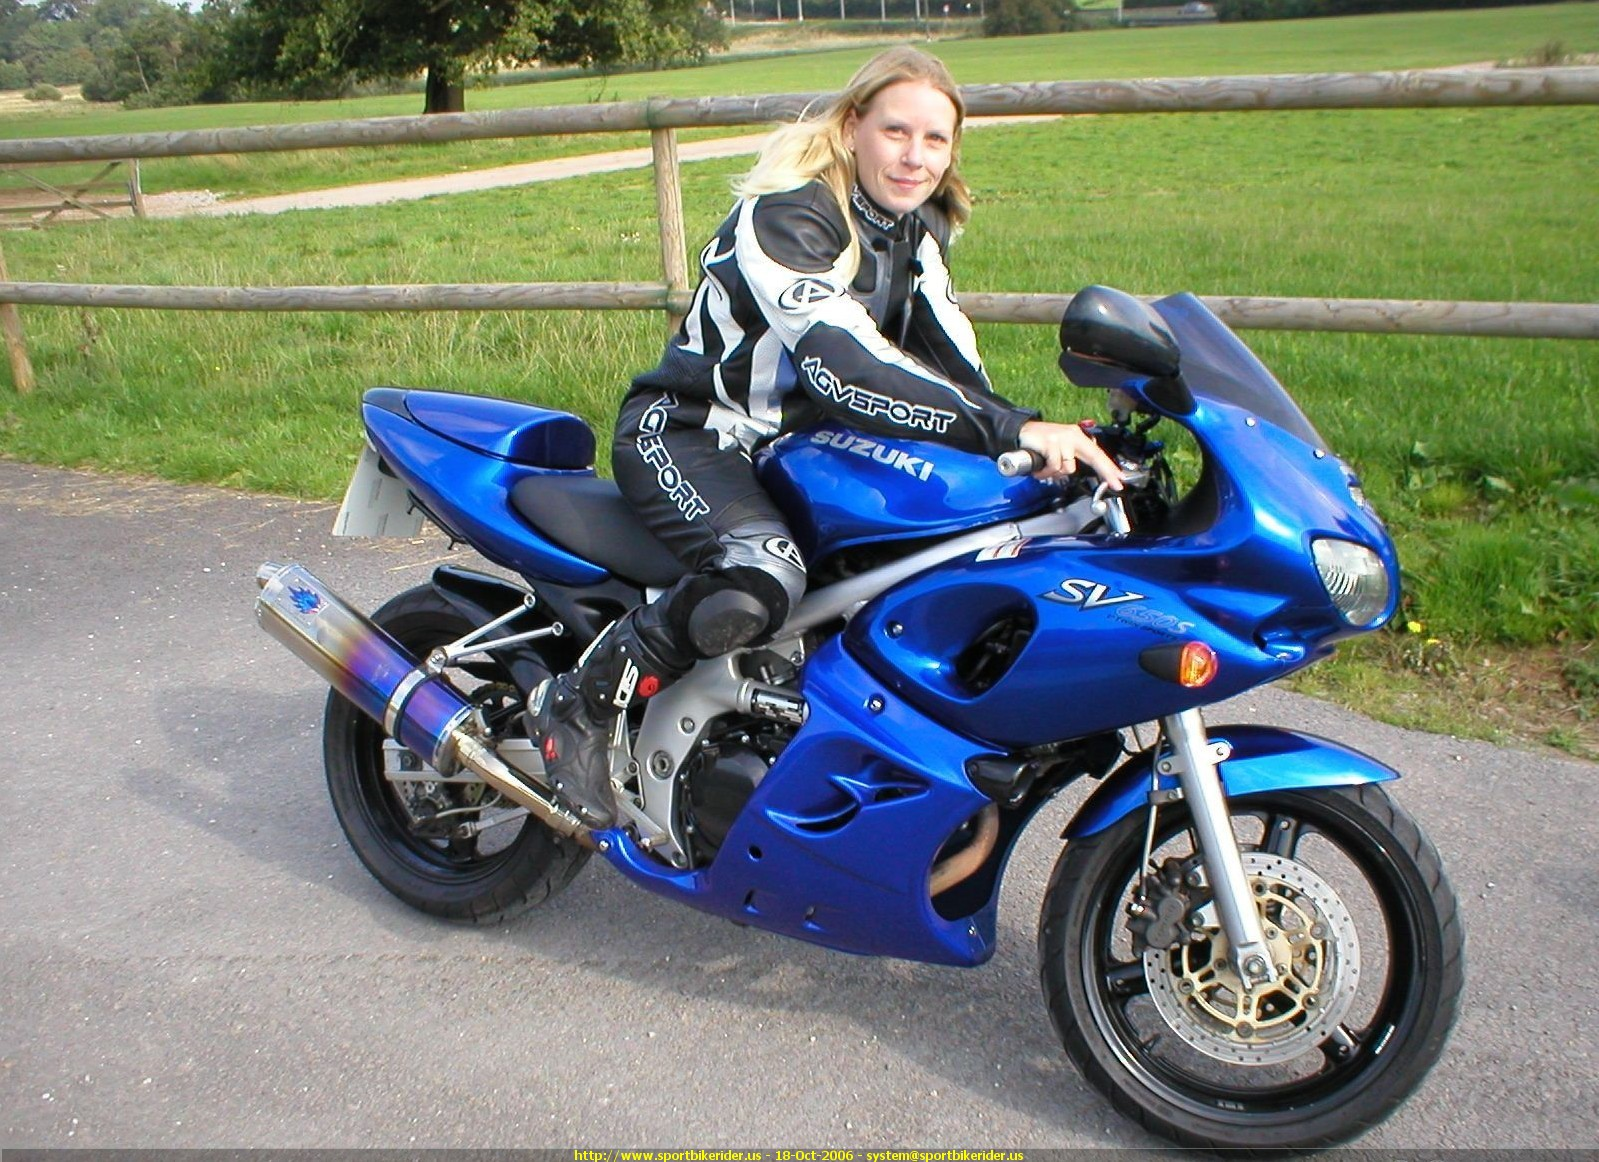 2000 Suzuki SV 650 S specifications and pictures